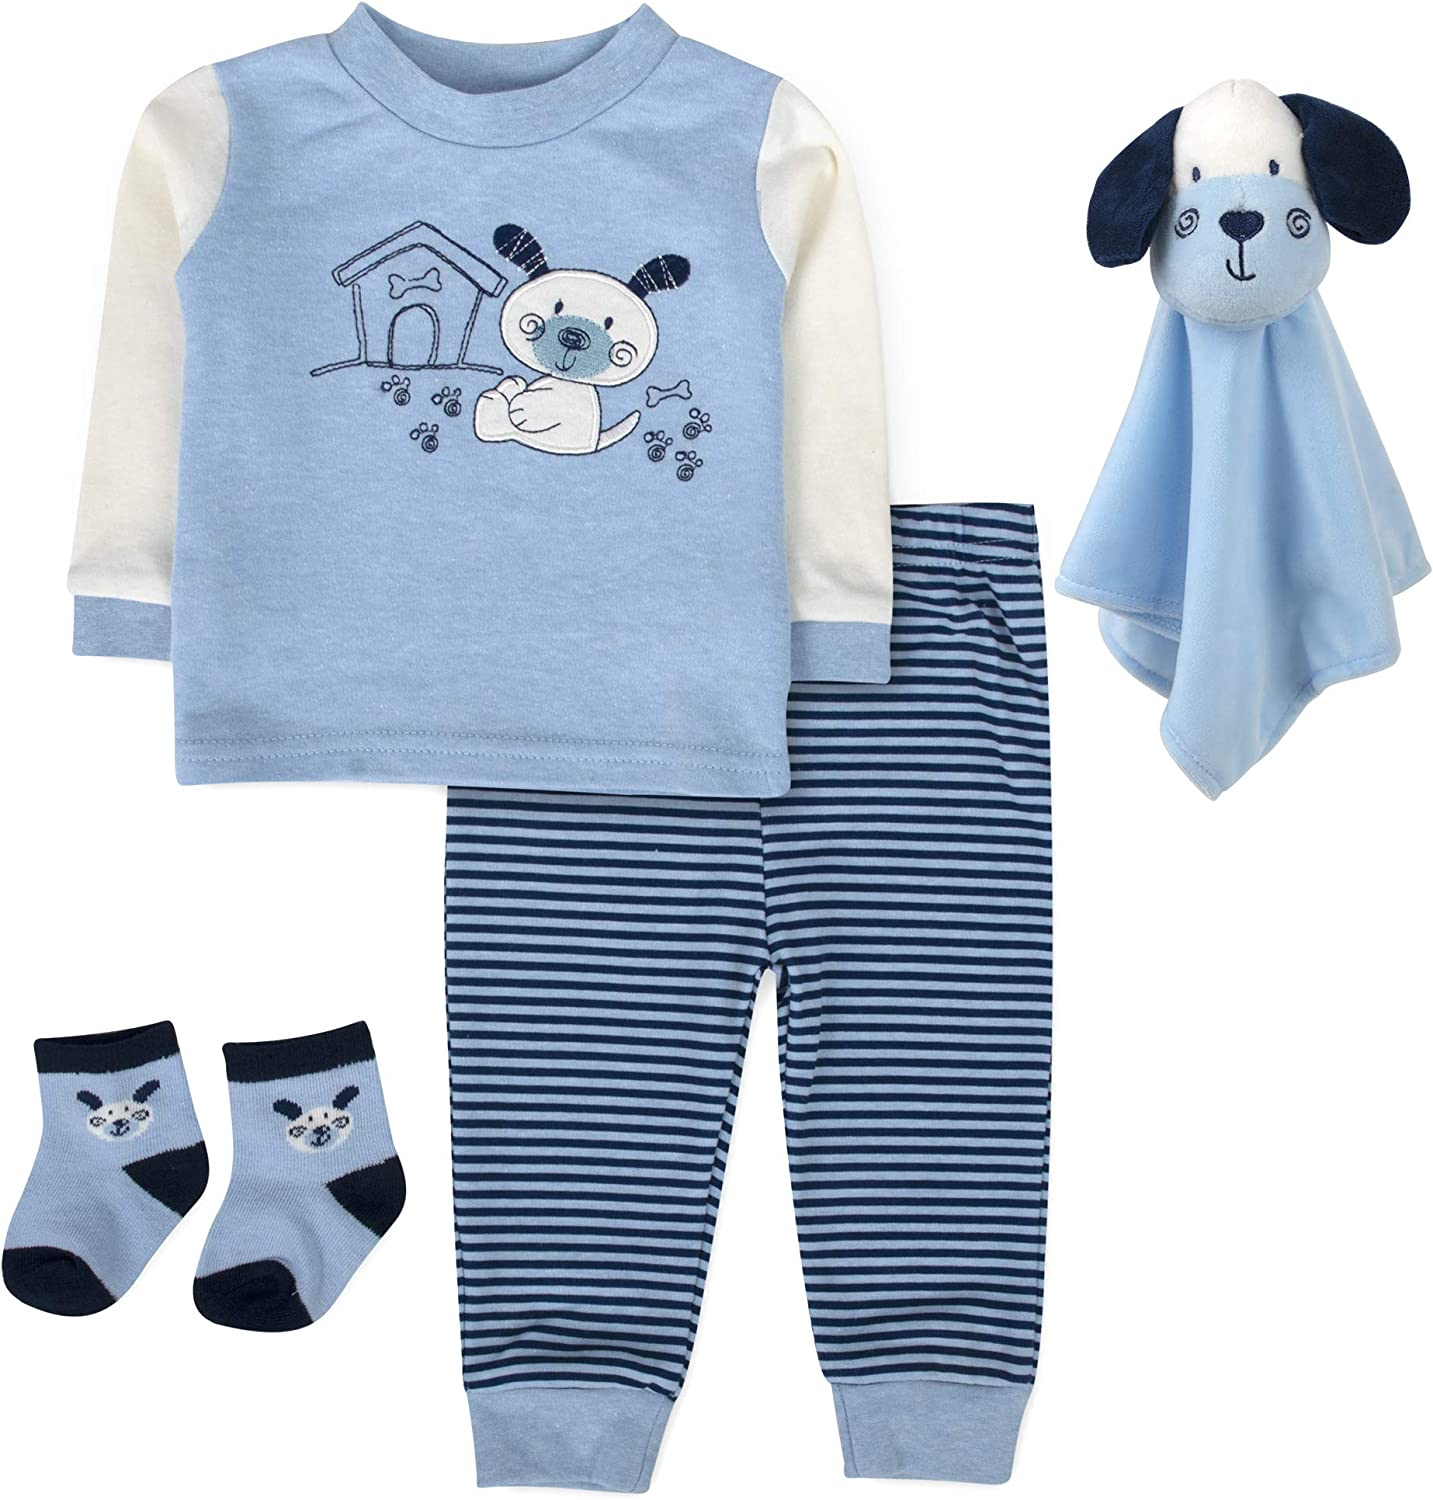 Take Me Home Outfit Baby Boy with Lovey, Baby Boy Pants, Shirt, Socks, 4 Pc Set 3-6 Months